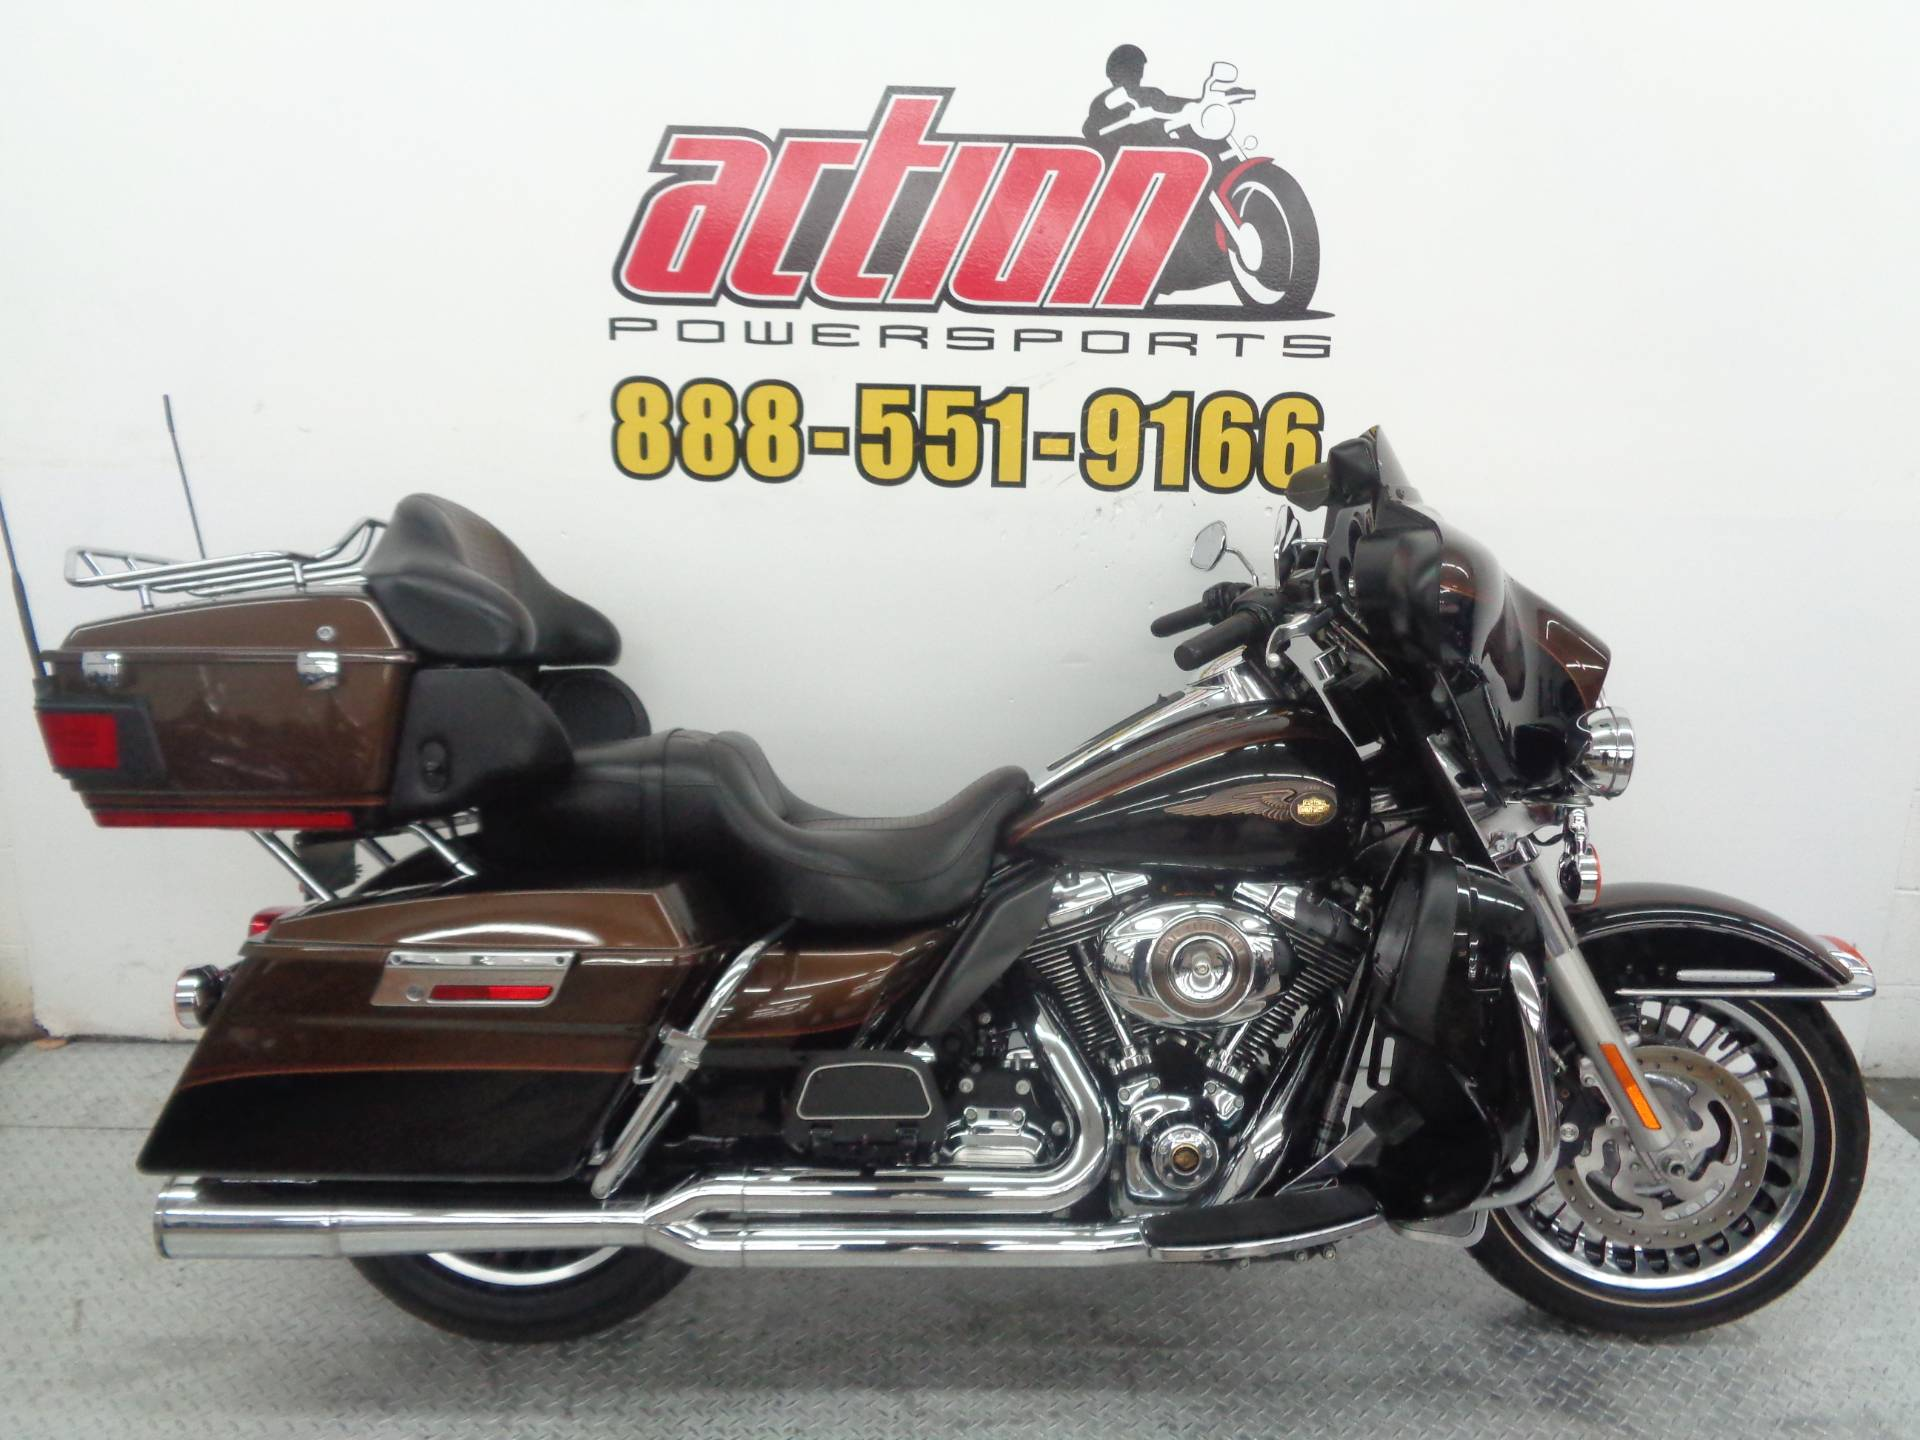 2013 Harley-Davidson Electra Glide® Ultra Limited 110th Anniversary Edition in Tulsa, Oklahoma - Photo 1